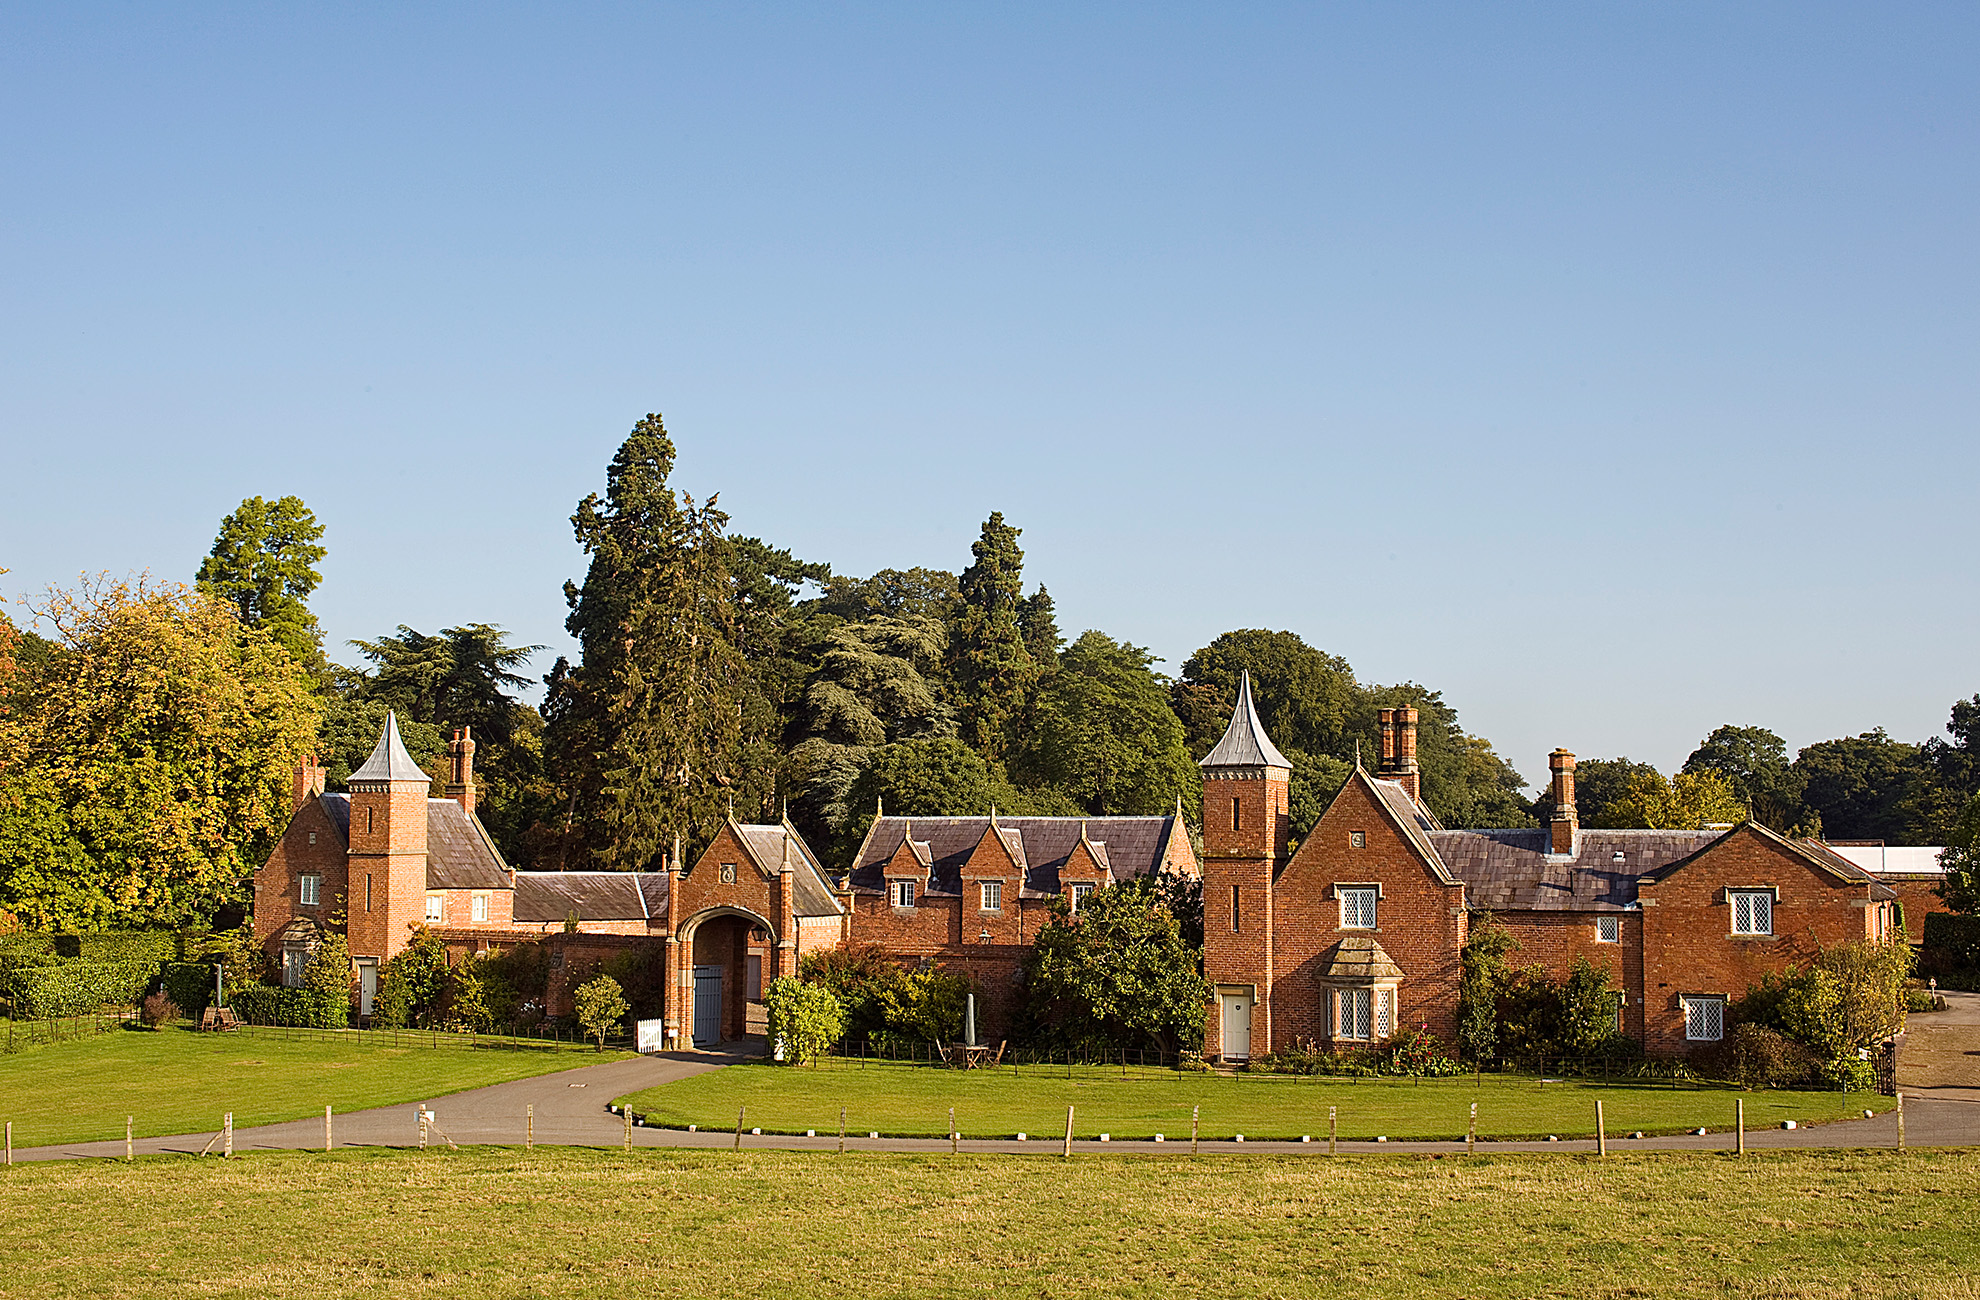 For a relaxing stay at Combermere Abbey why not book one of our beautiful cottages